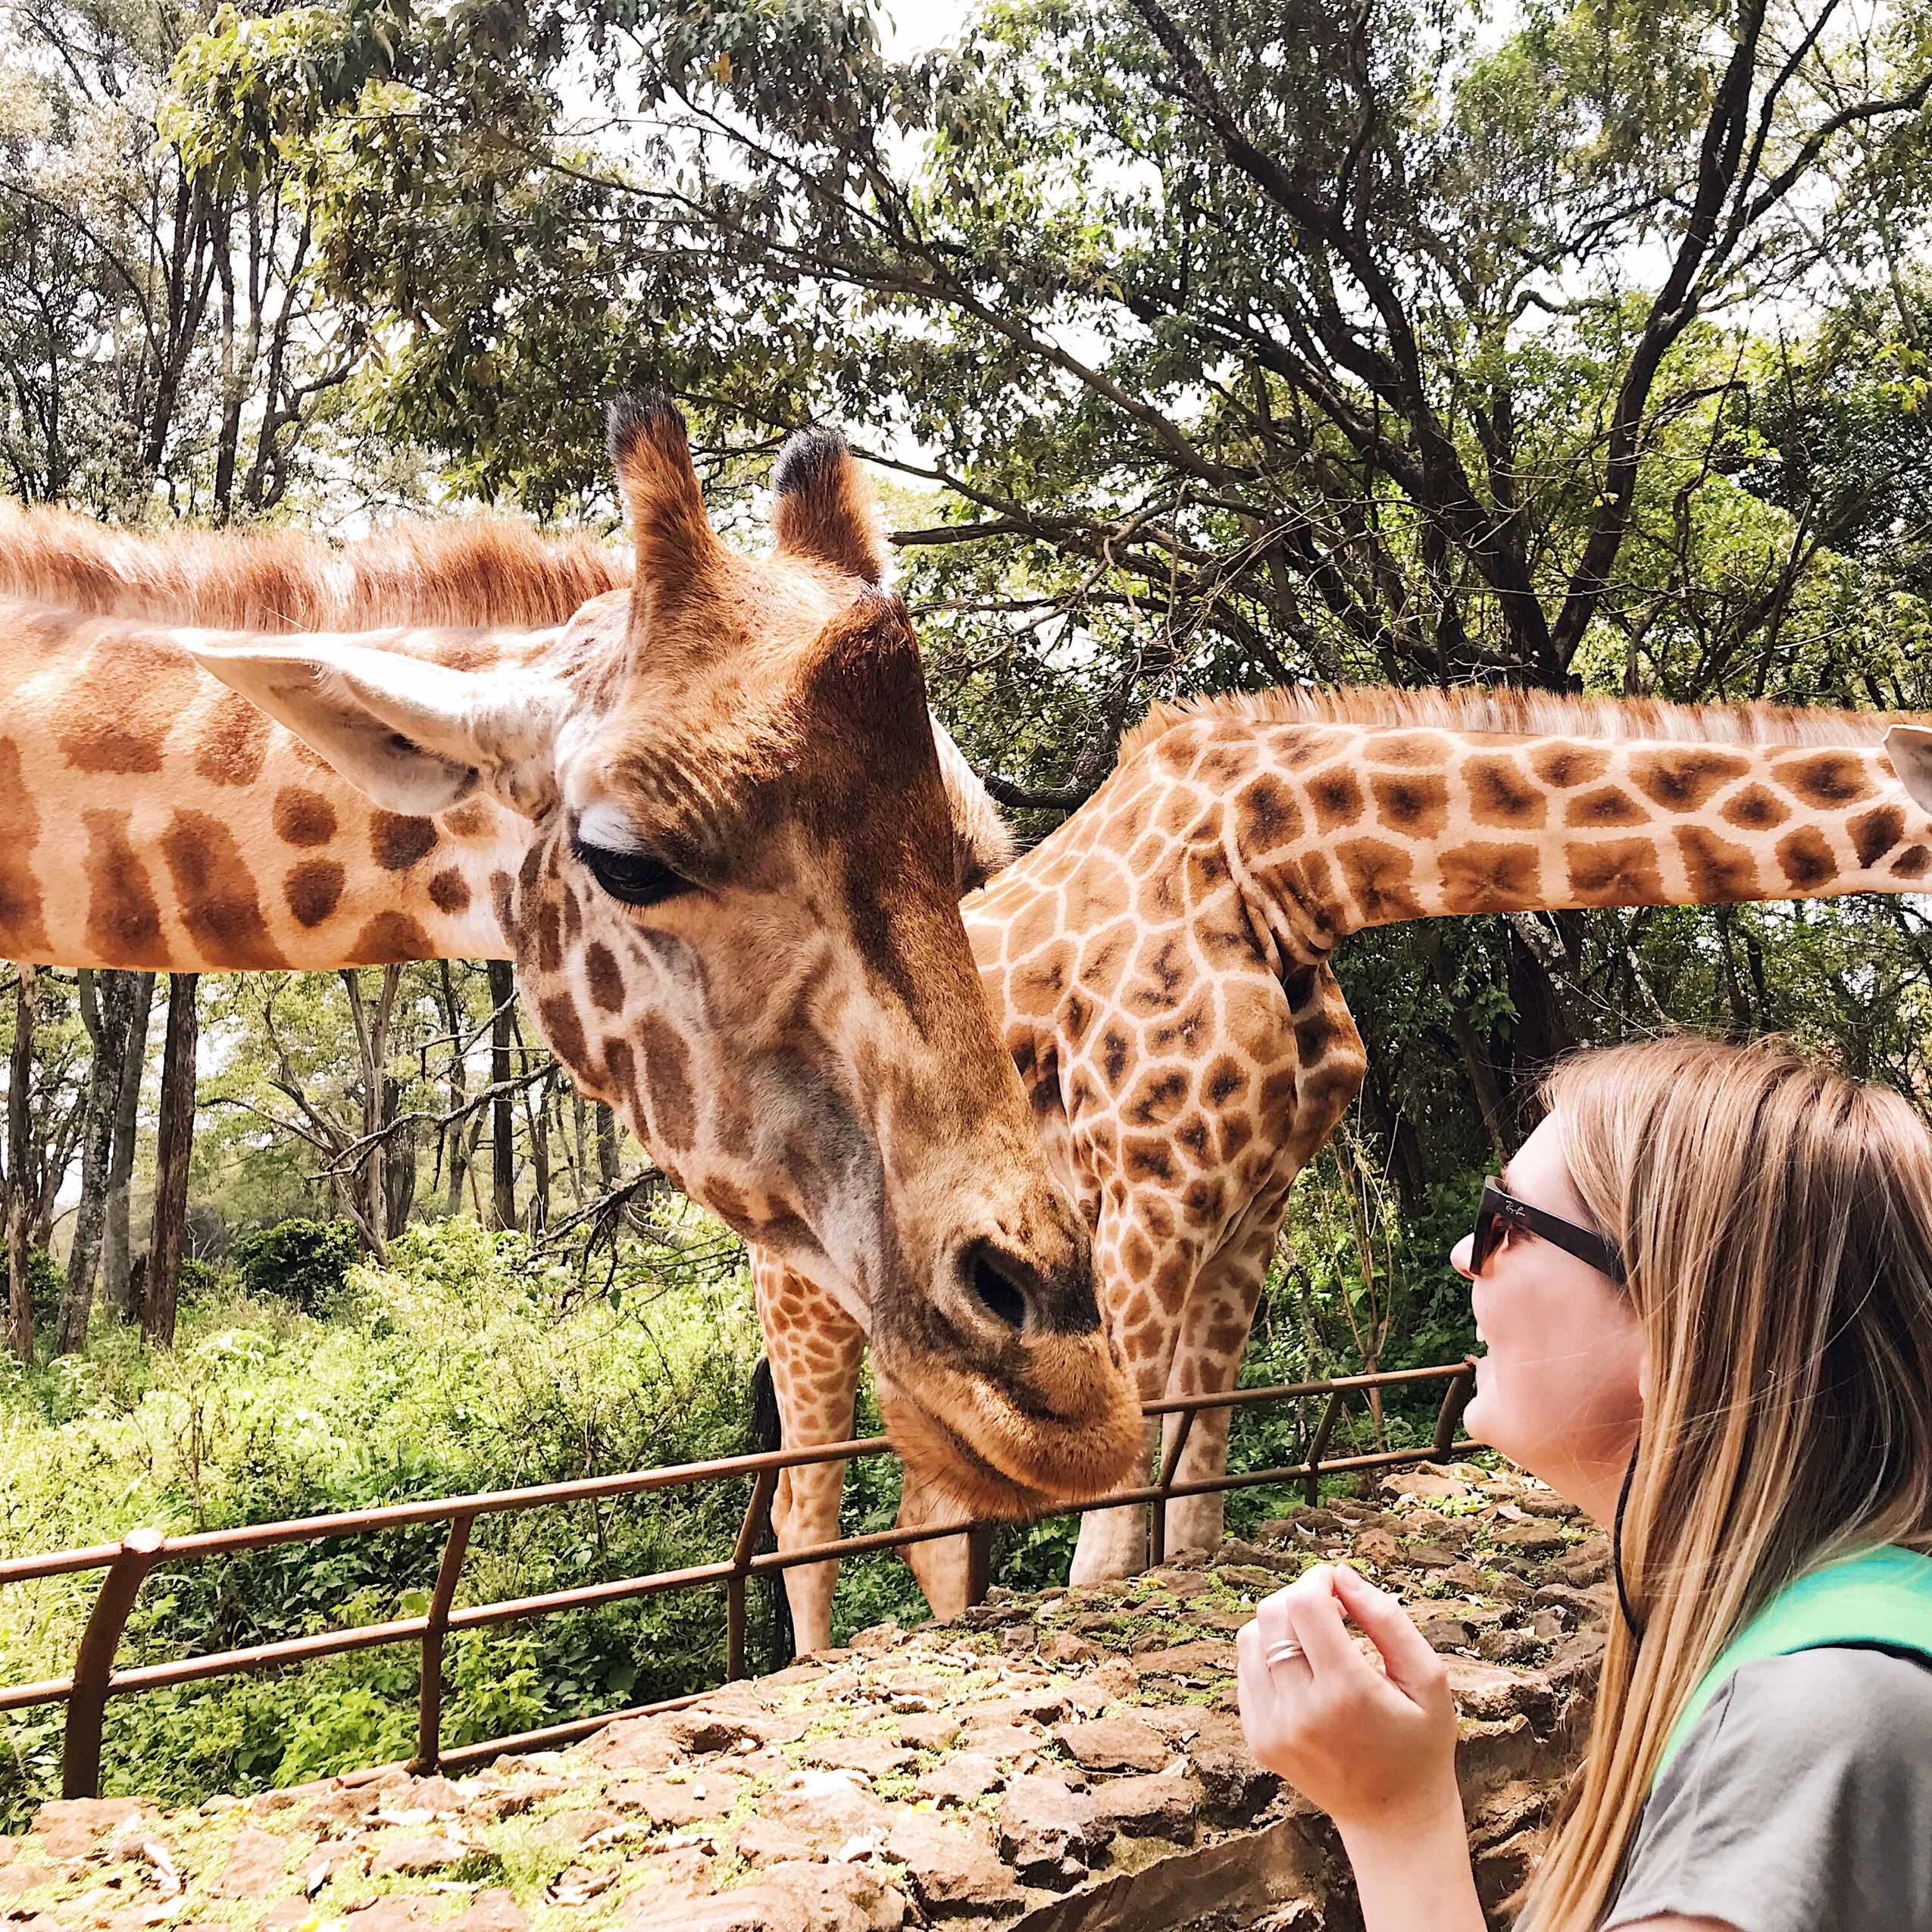 Image of giraffes in Nairobi